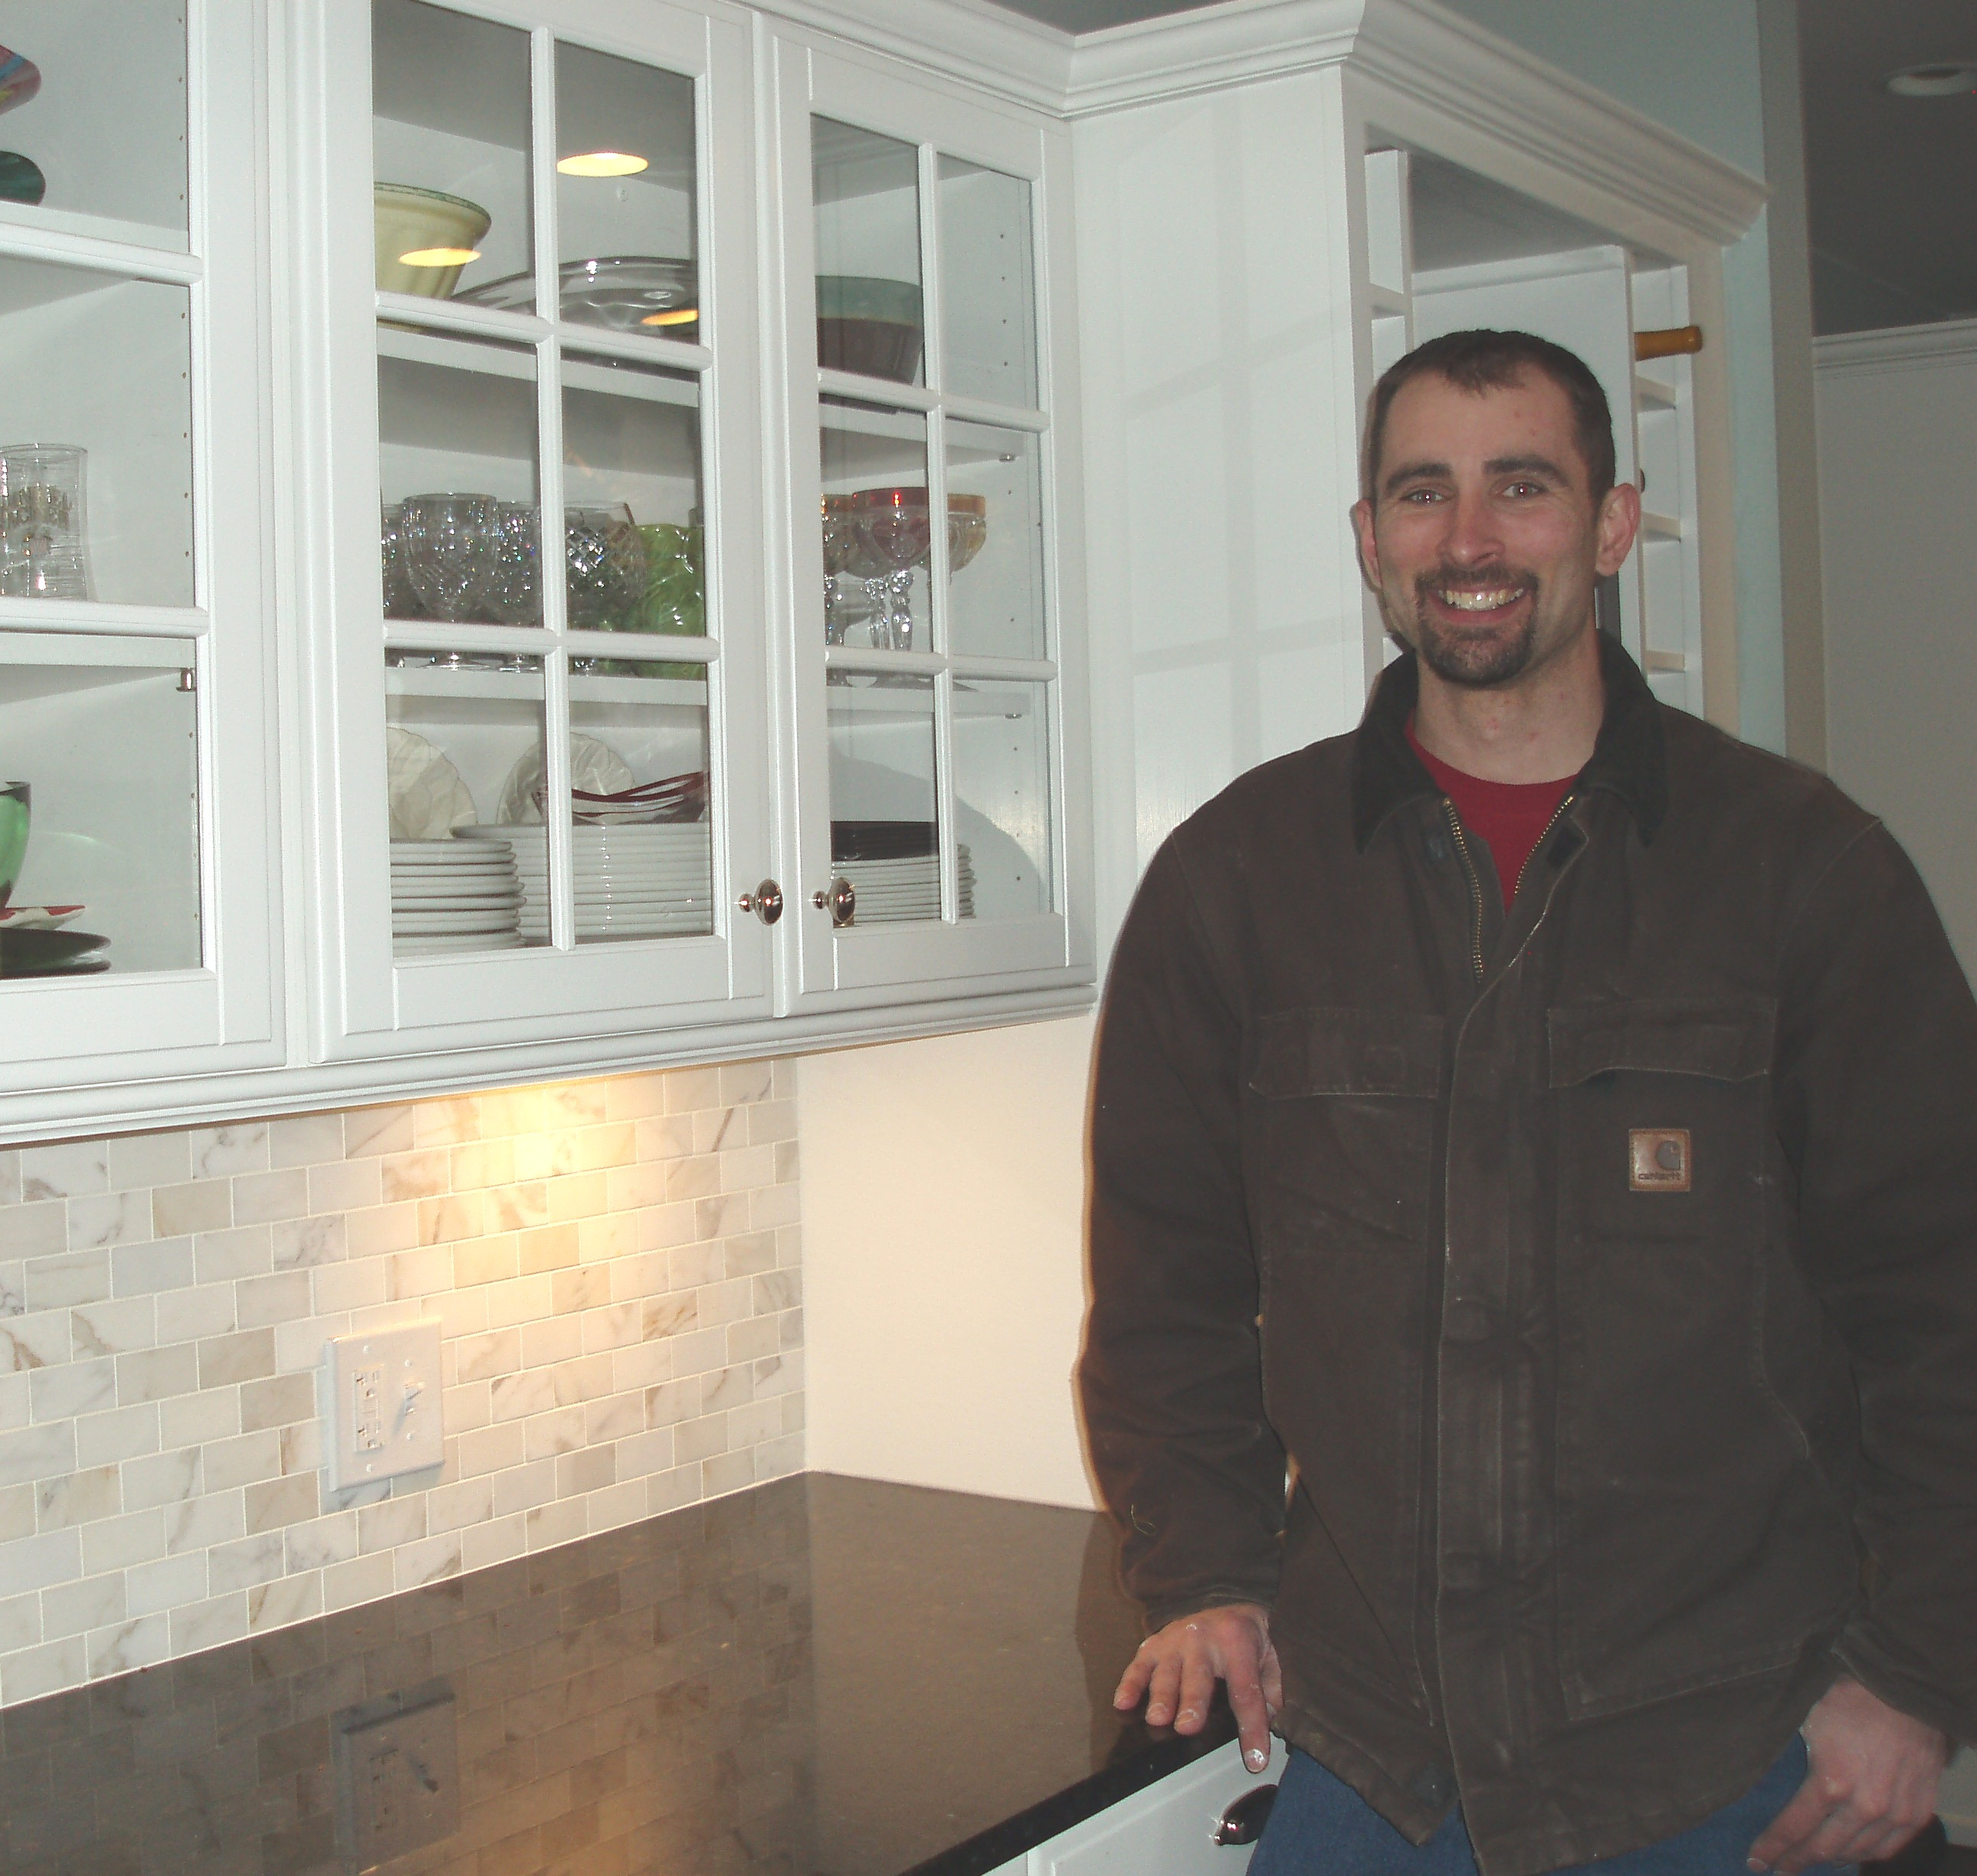 Joe Pollnow did the tile back splast and cabinetry in this kitchen. He's done numerous jobs in the same home for eight years. Photo by Peggy Schulz